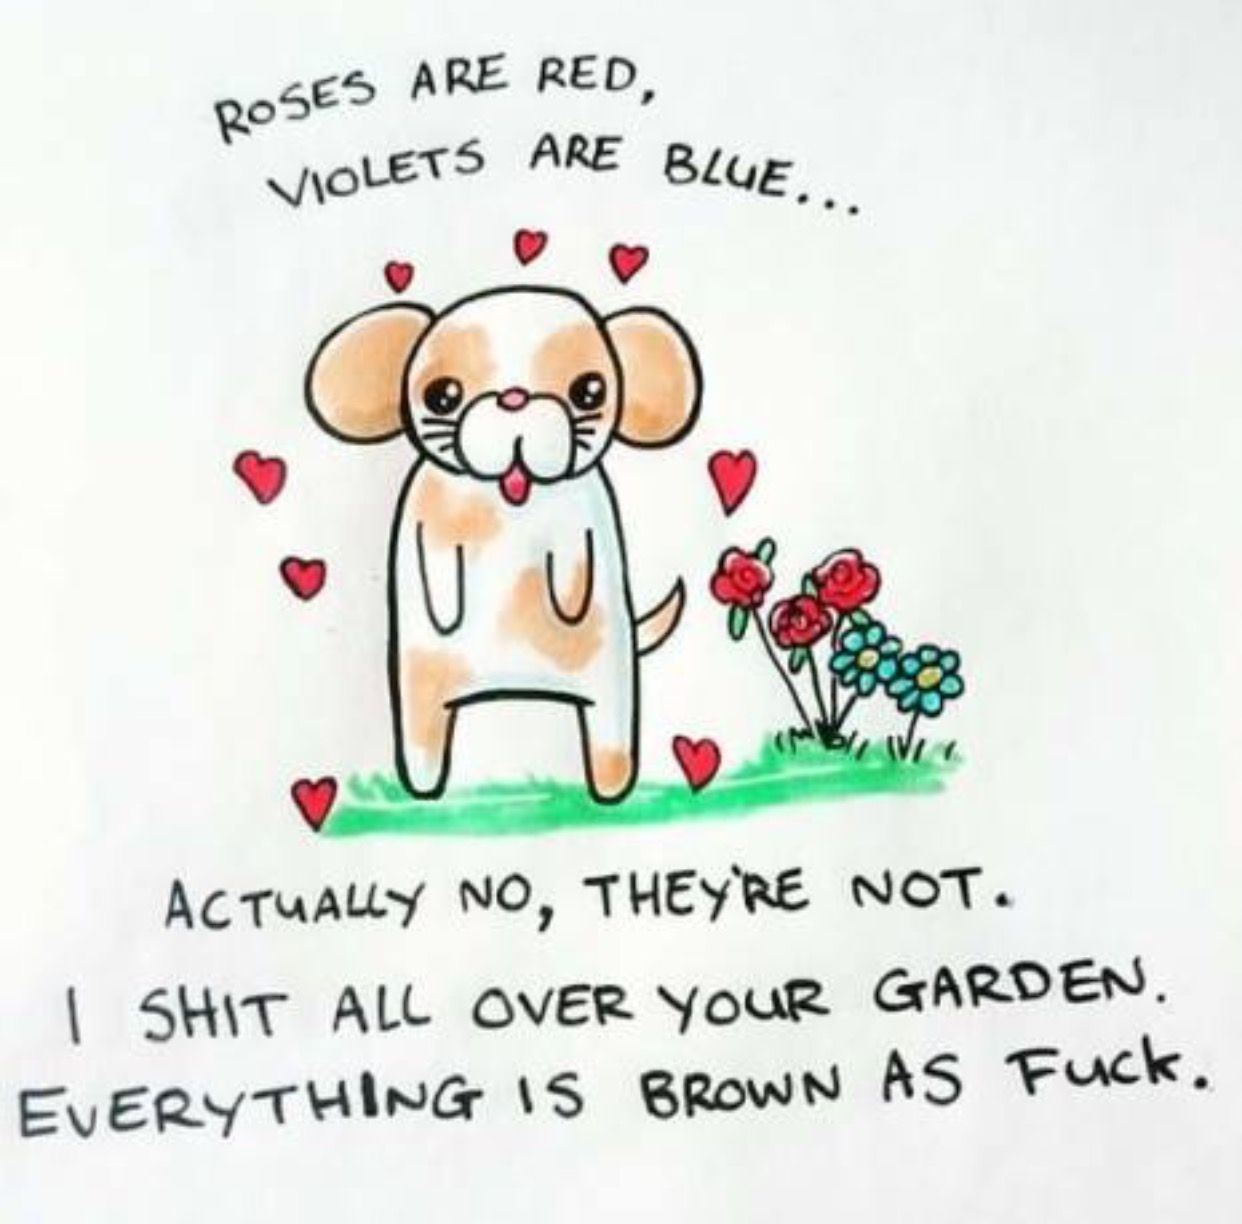 Pin by matt nance on funny but youve been warned pinterest these are rough sketchbook doodles i did of cute greeting card style illustrations with offensive words in my handwriting kristyandbryce Image collections